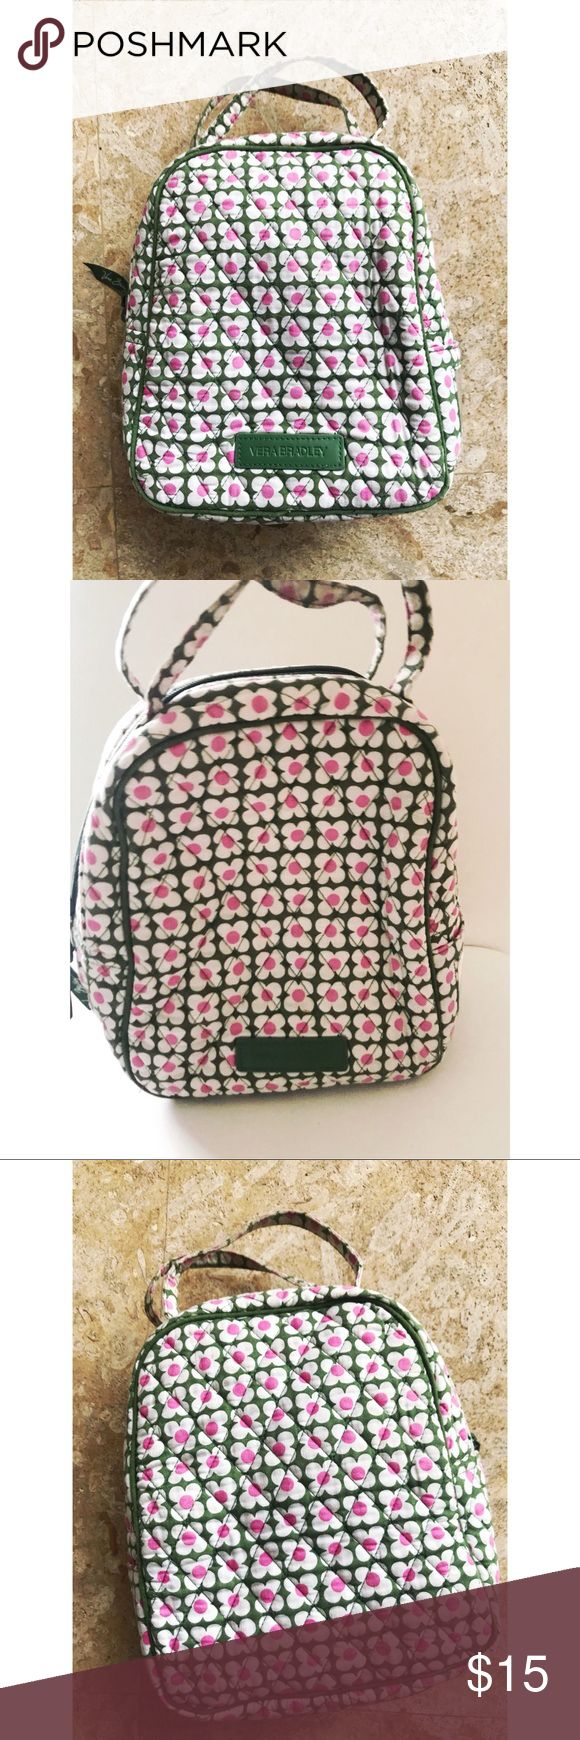 """Vera Bradley Lunch Bag Holds most pre-packaged frozen meals or Thermos. External ID window. Zip closure. Dimensions 7 ½"""" w x 9"""" h x 4 ¼"""" d with 3"""" handle drop Machine wash cold, gentle cycle, use only non-chlorine bleach as needed; line dry Good Condition Vera Bradley Bags"""